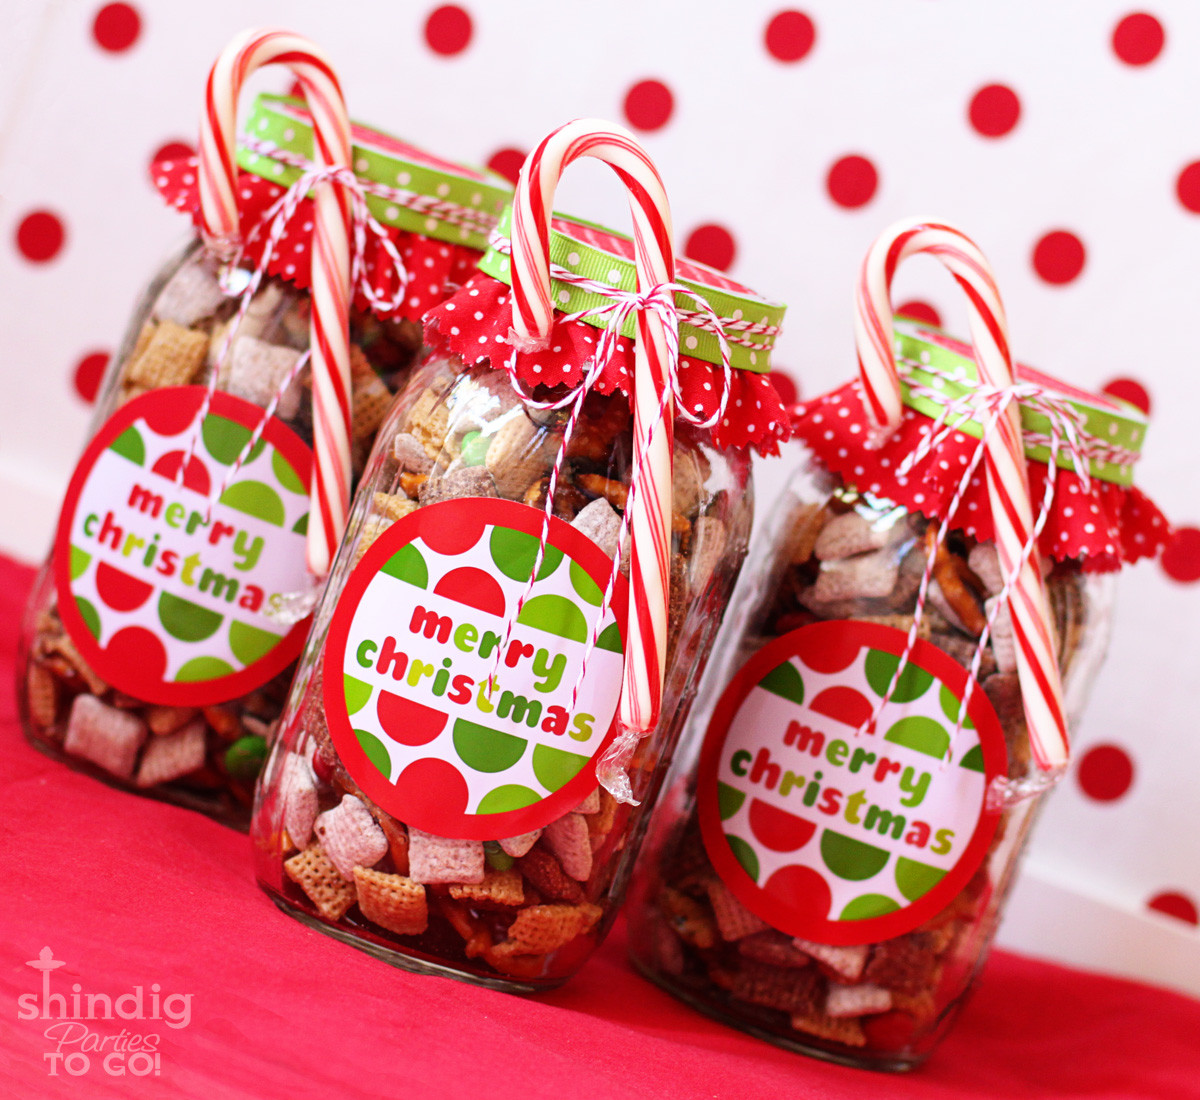 Christmas Candy Gift Ideas  How To Make Handmade Chex Mix Holiday Gifts & Bonus Free